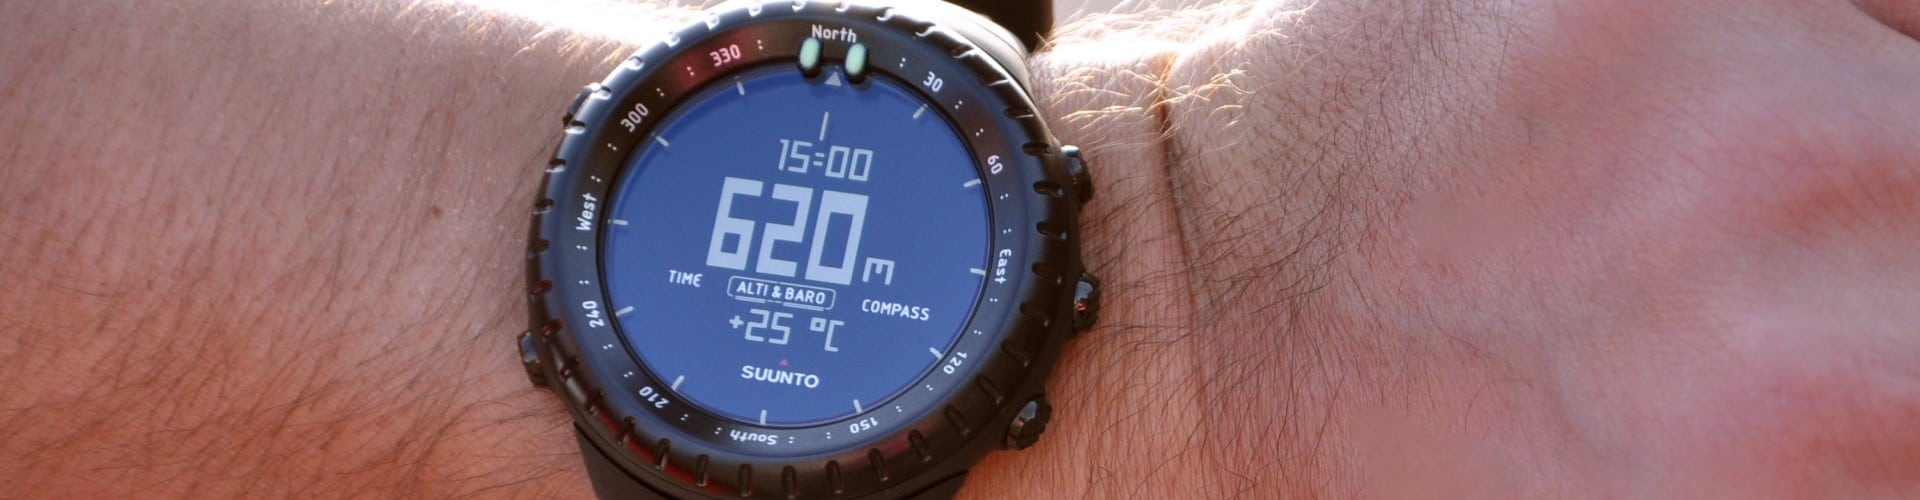 Best Compass Watches Reviewed in Detail